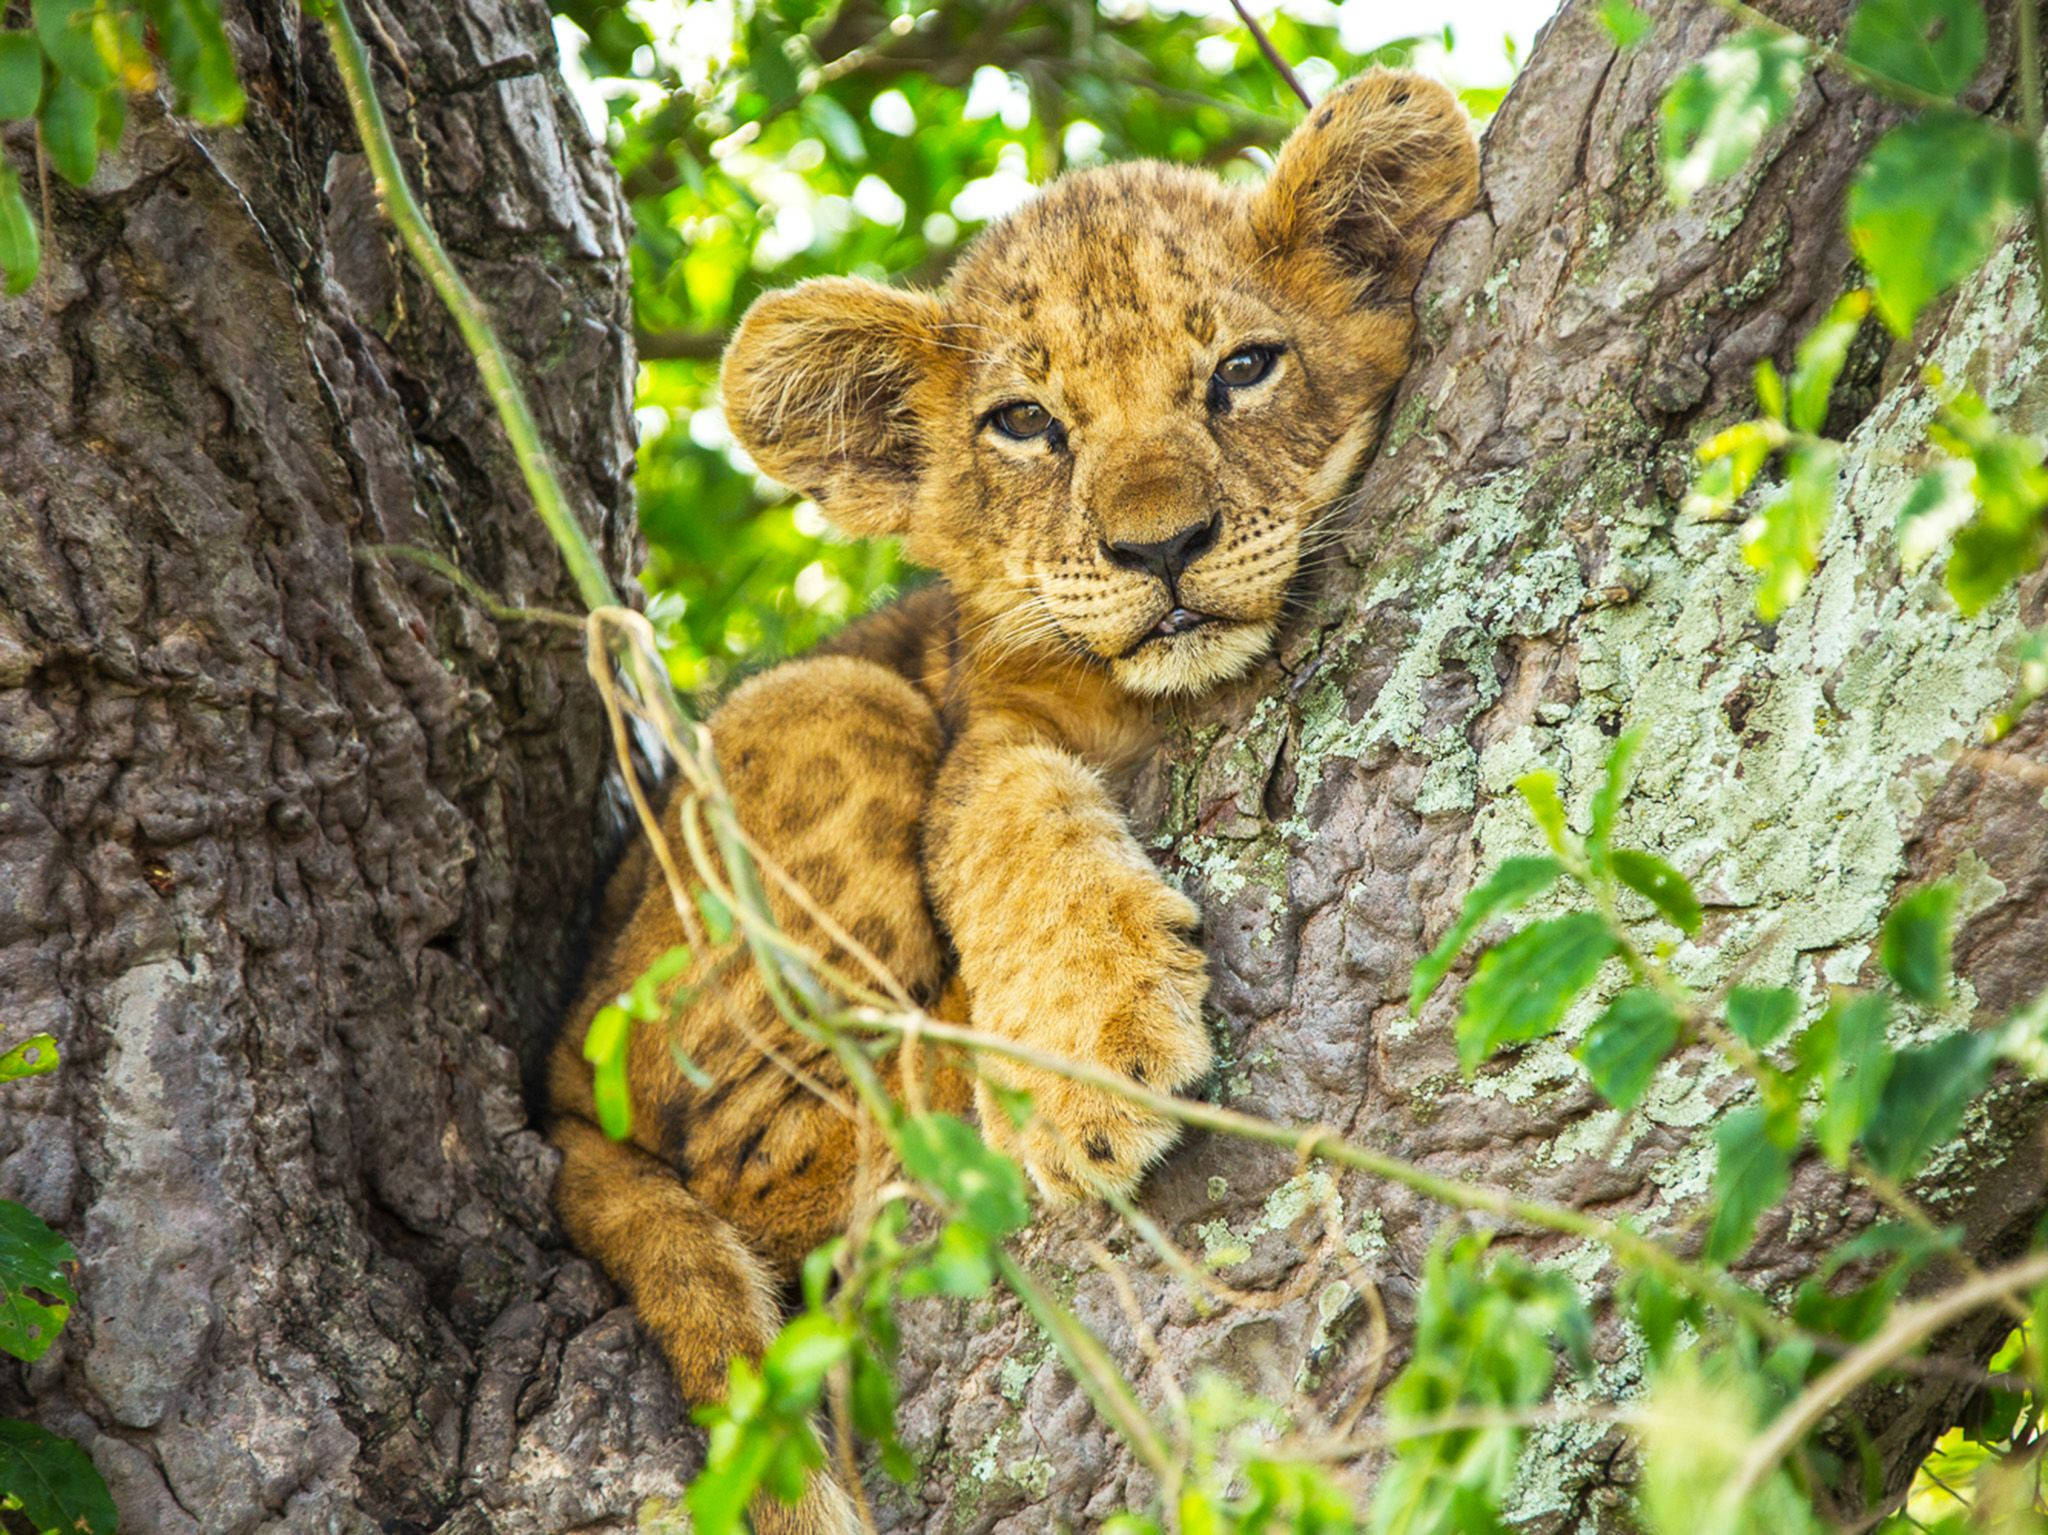 Queen Elizabeth National Park, Uganda:  A young lion cub nestled in fork of tree. This image is... [Foto del giorno - November 2018]